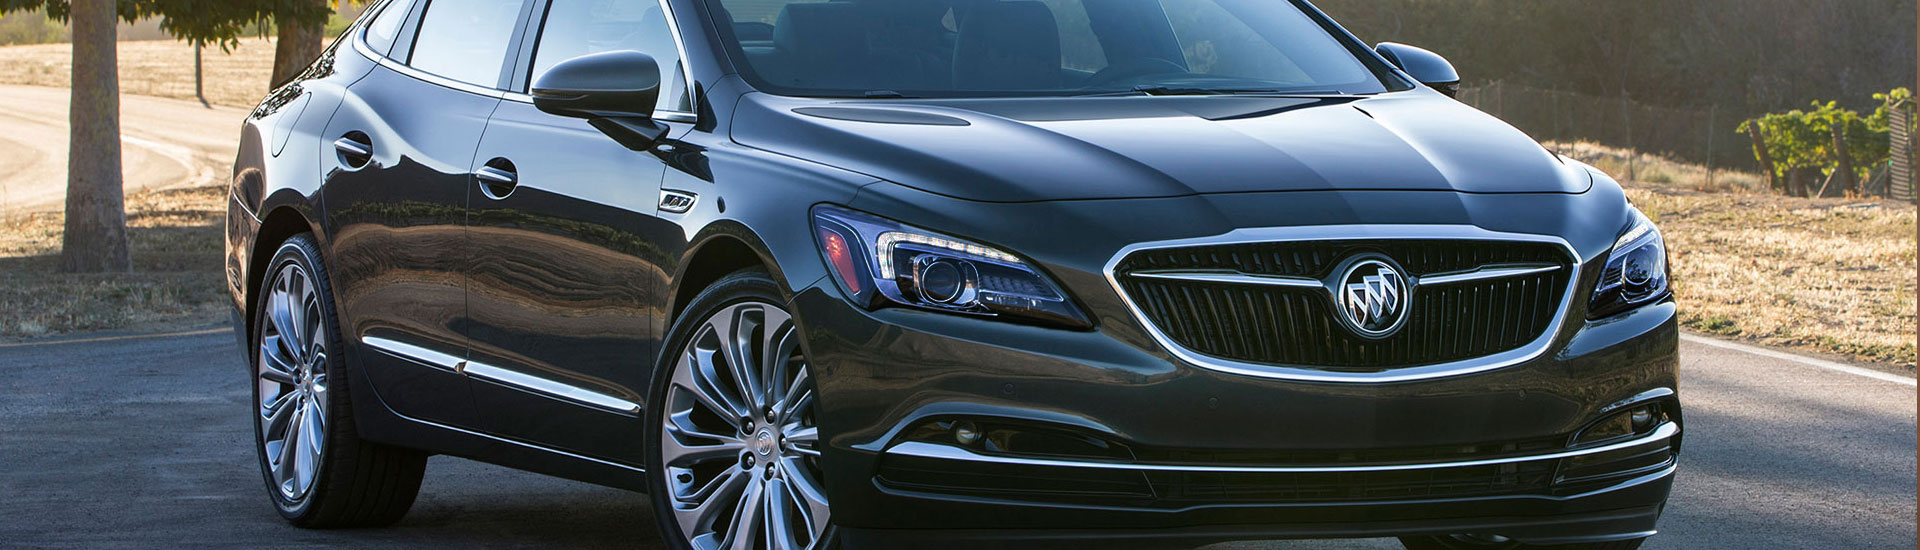 Buick Headlight Tint Covers